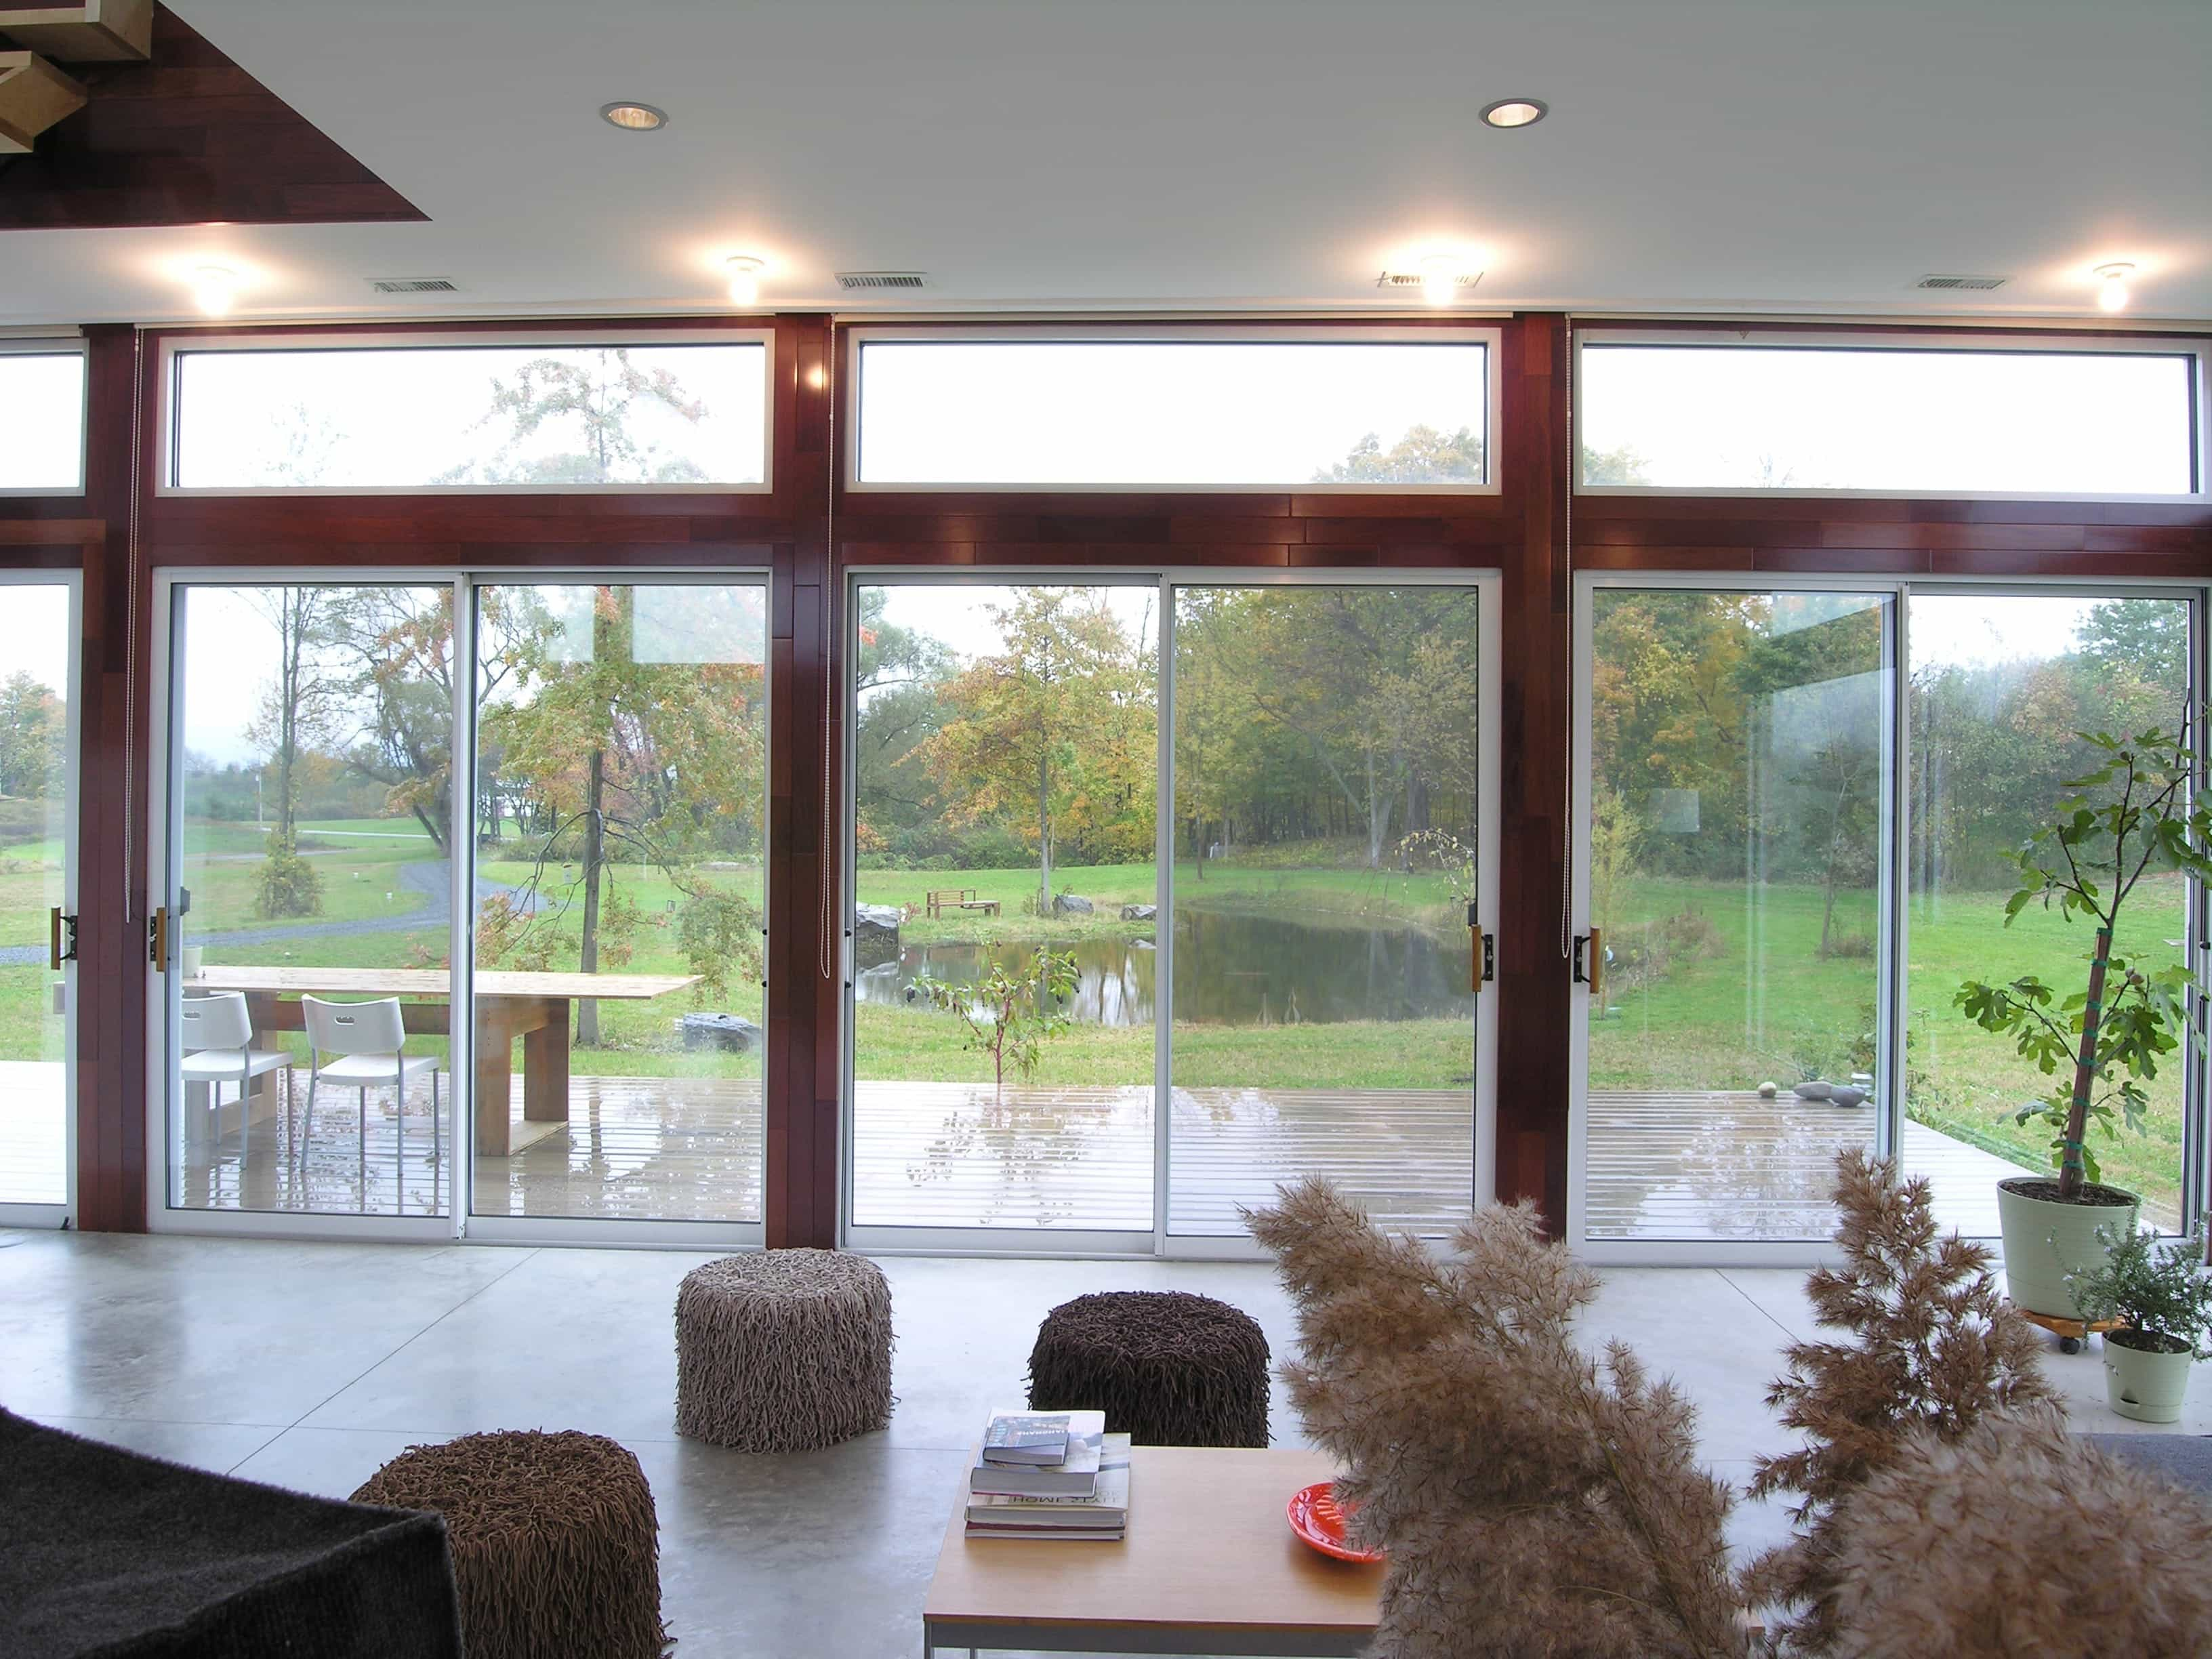 Rosewood Framed Sliding Glass Doors For Contemporary Living Room (Image 23 of 27)